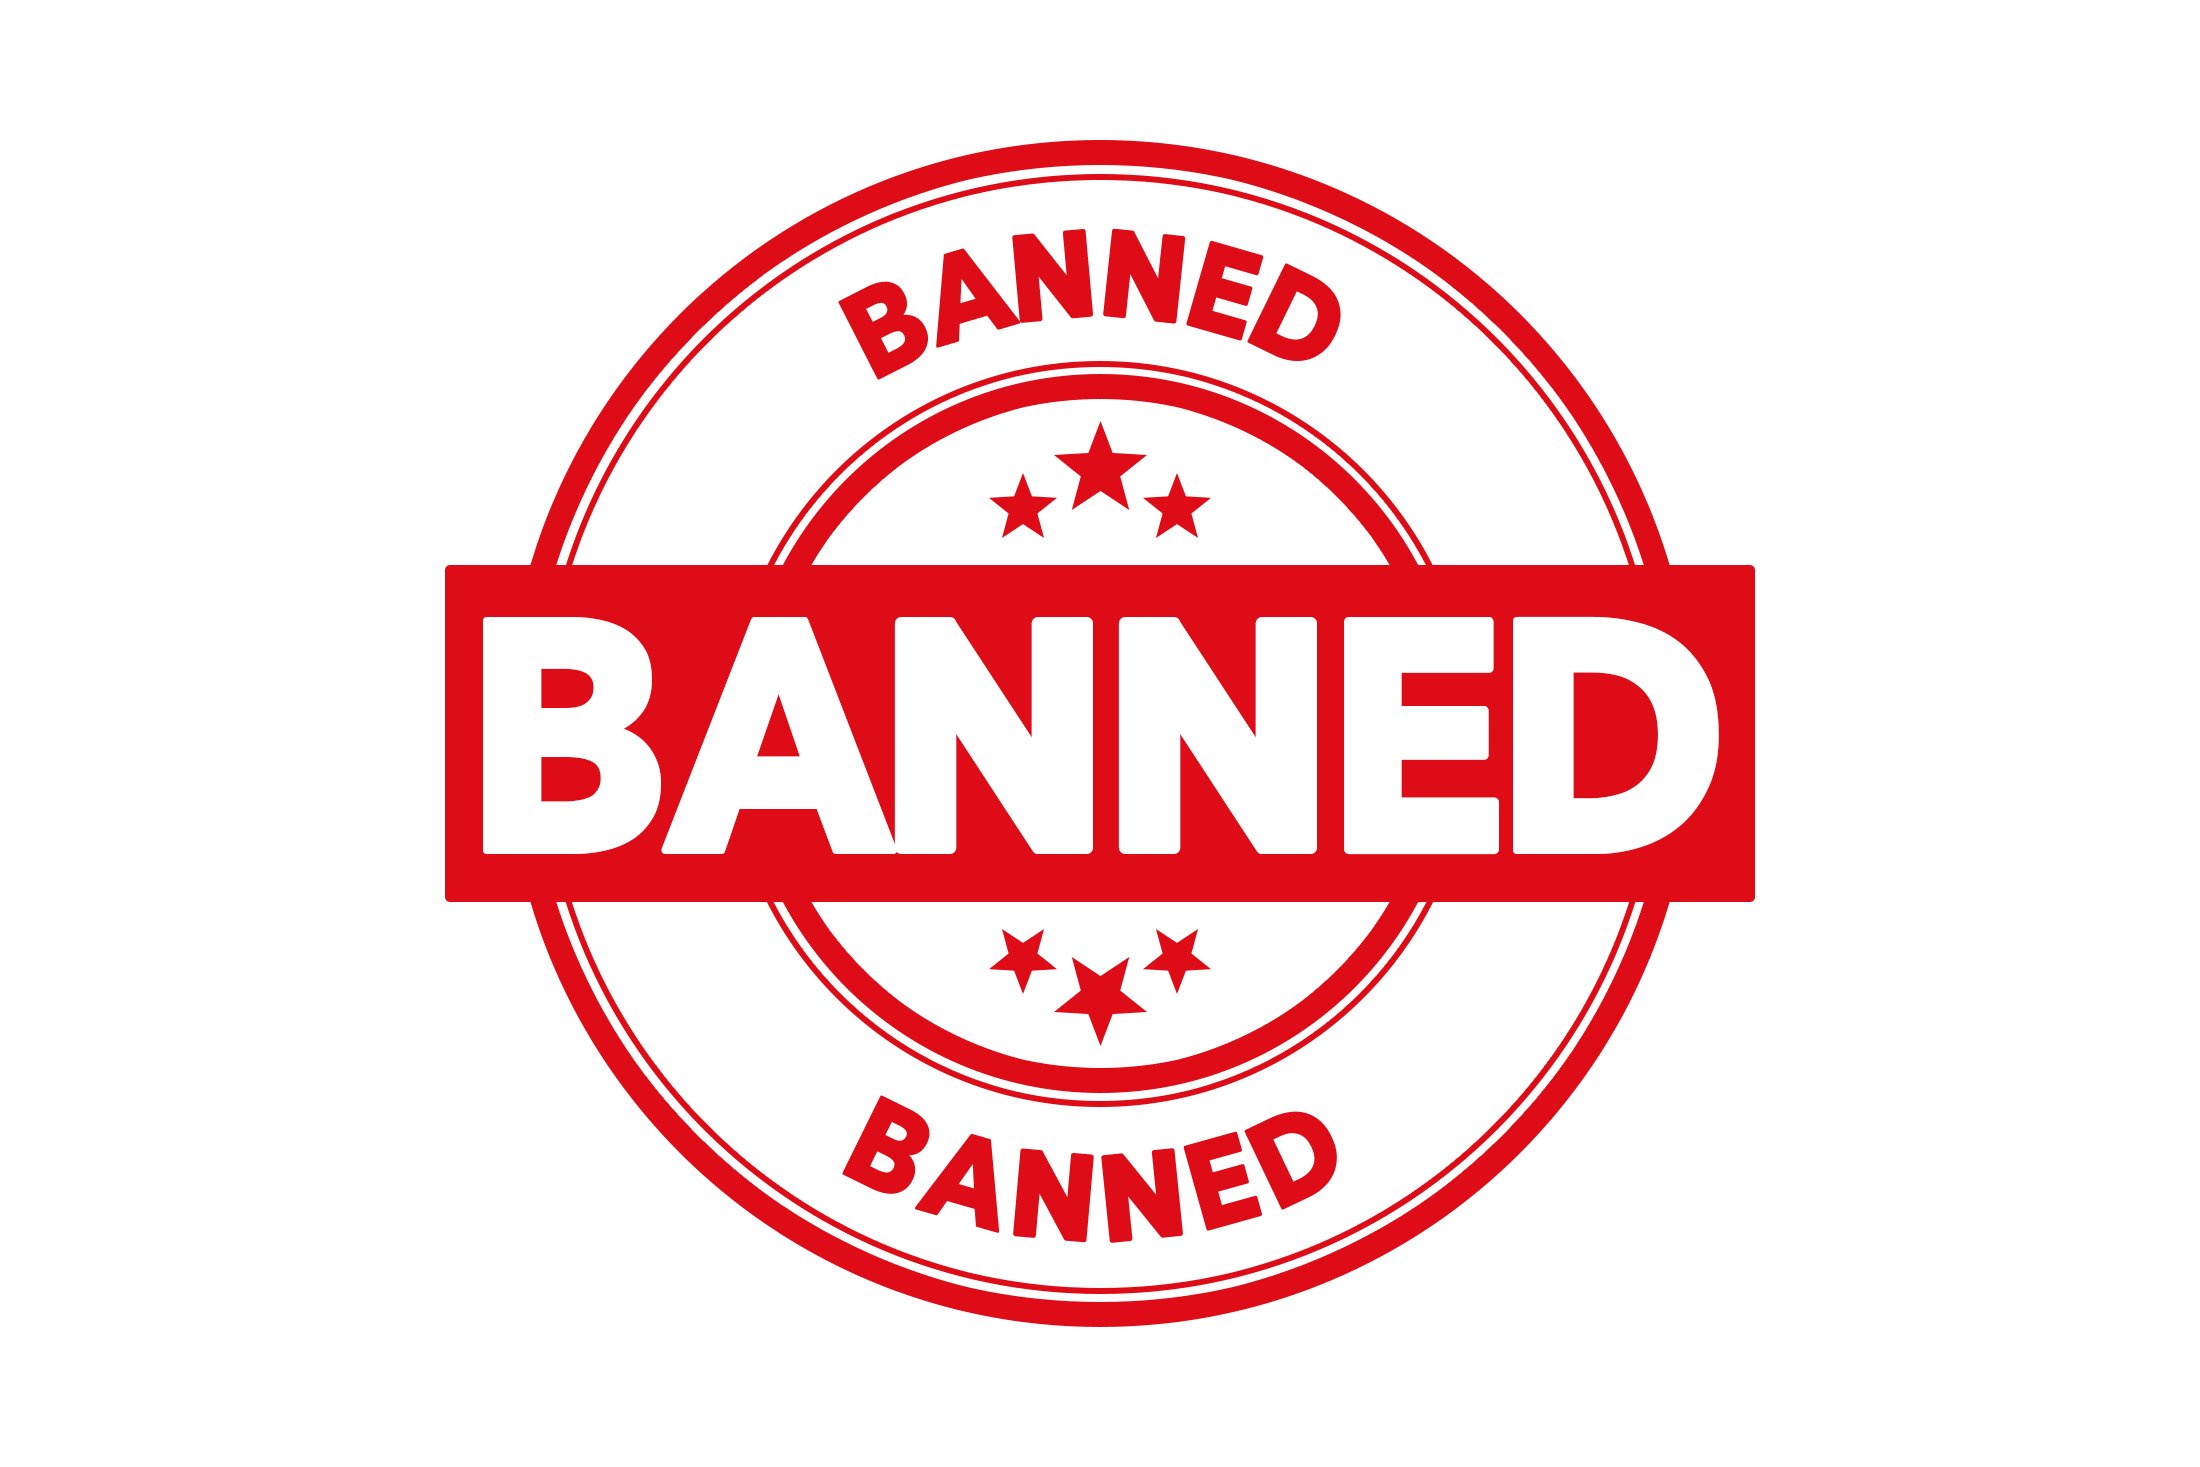 Round banned stamp PSD